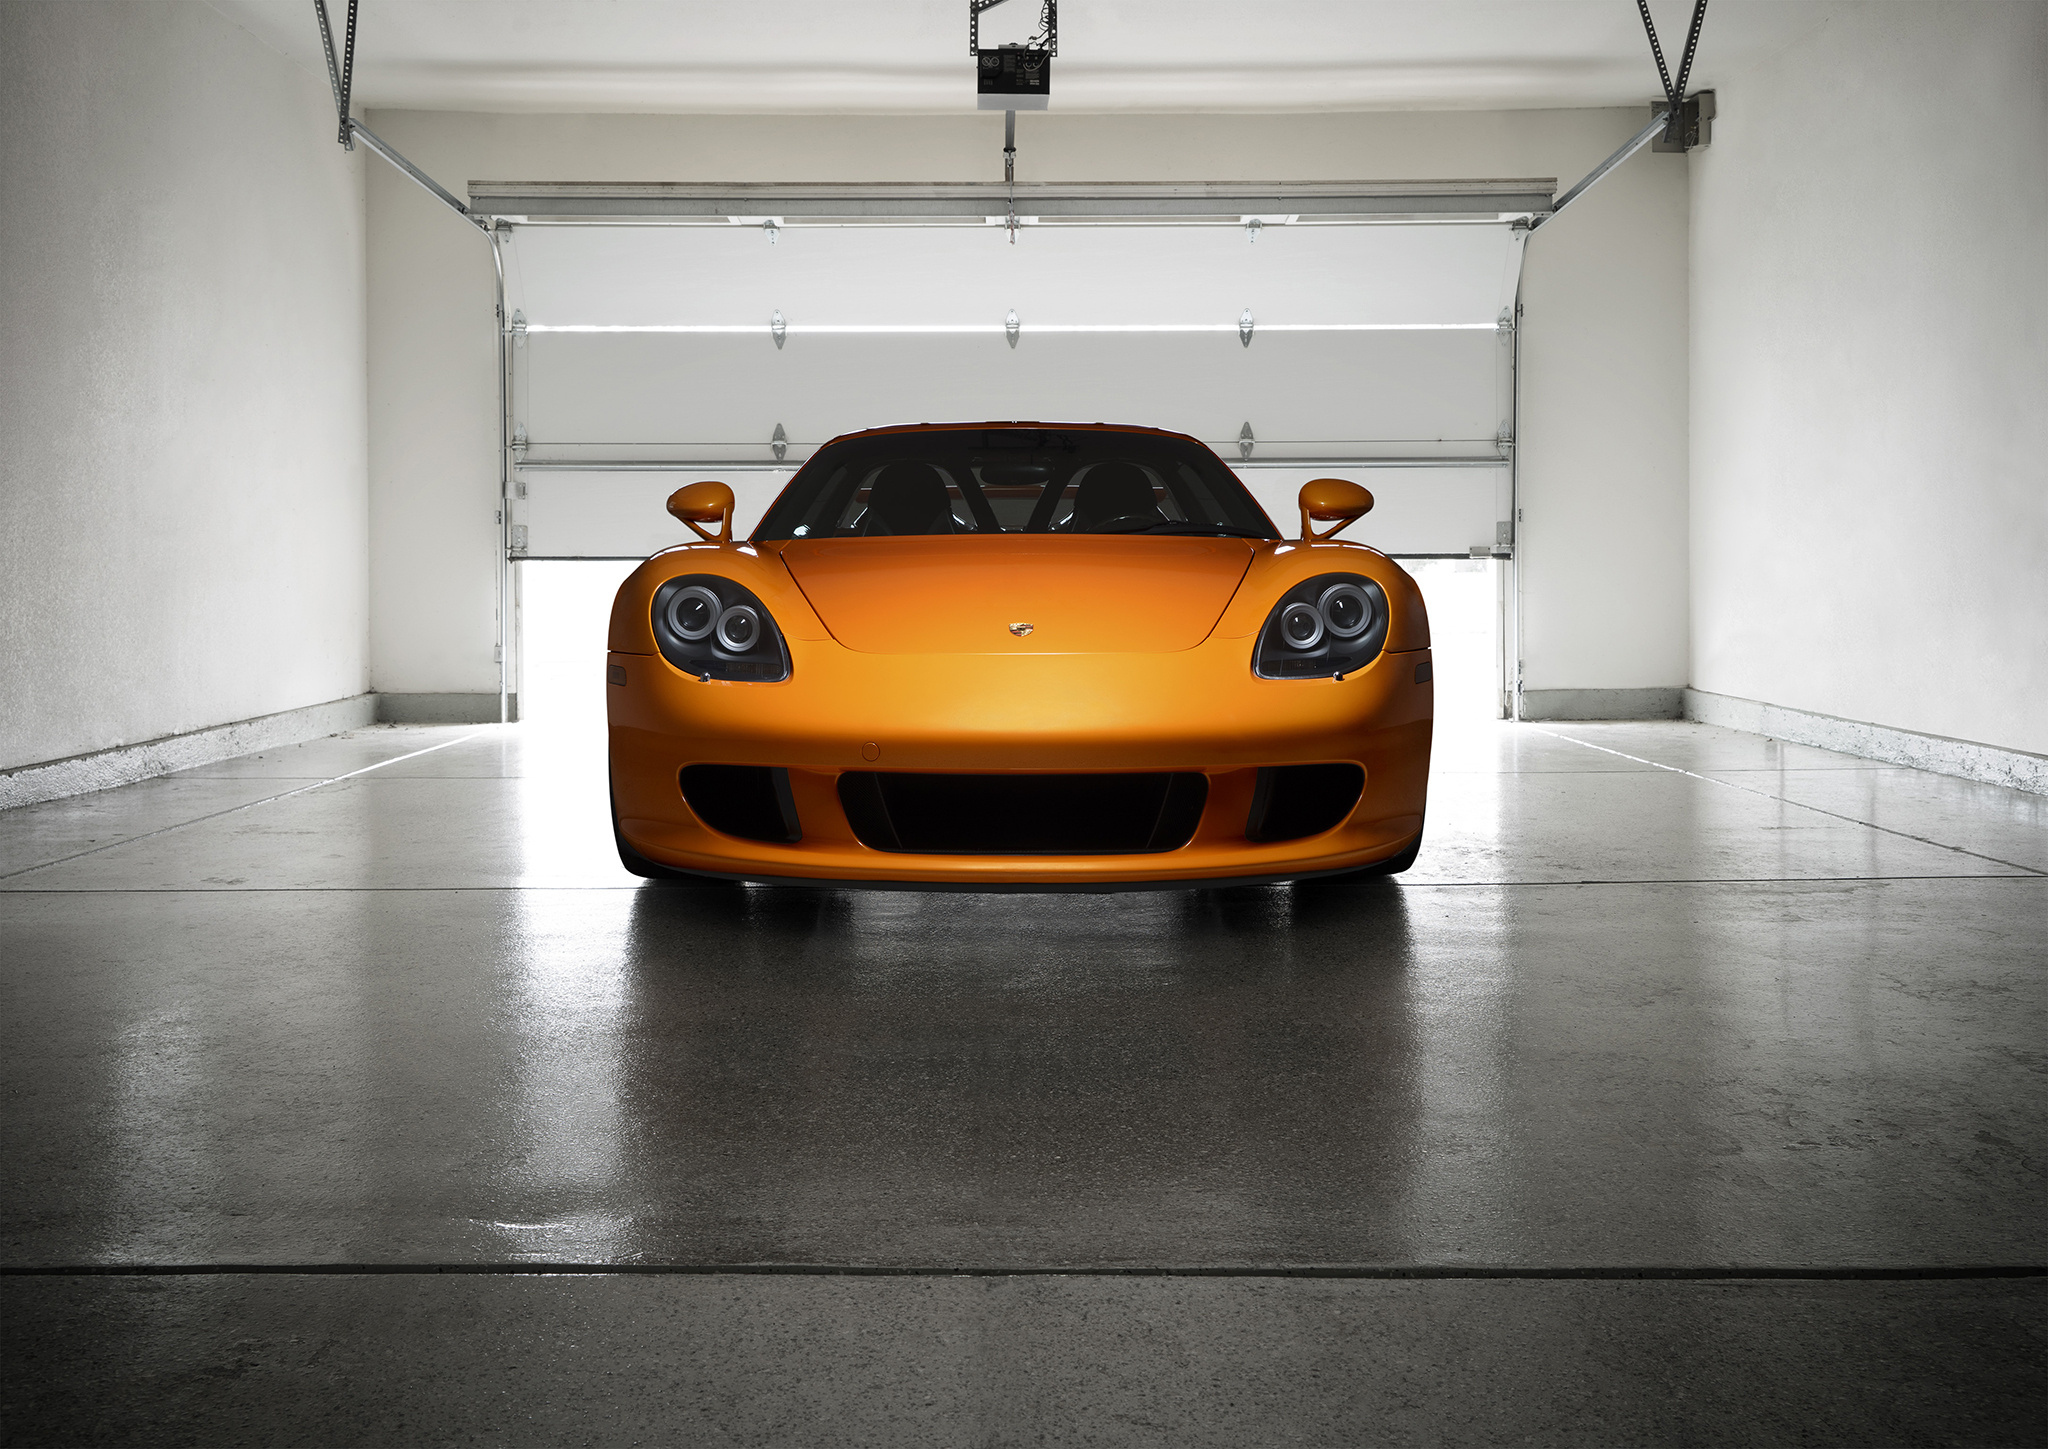 79443 free wallpaper 1080x2400 for phone, download images Porsche, Cars, Front View, Gt, Carrera 1080x2400 for mobile